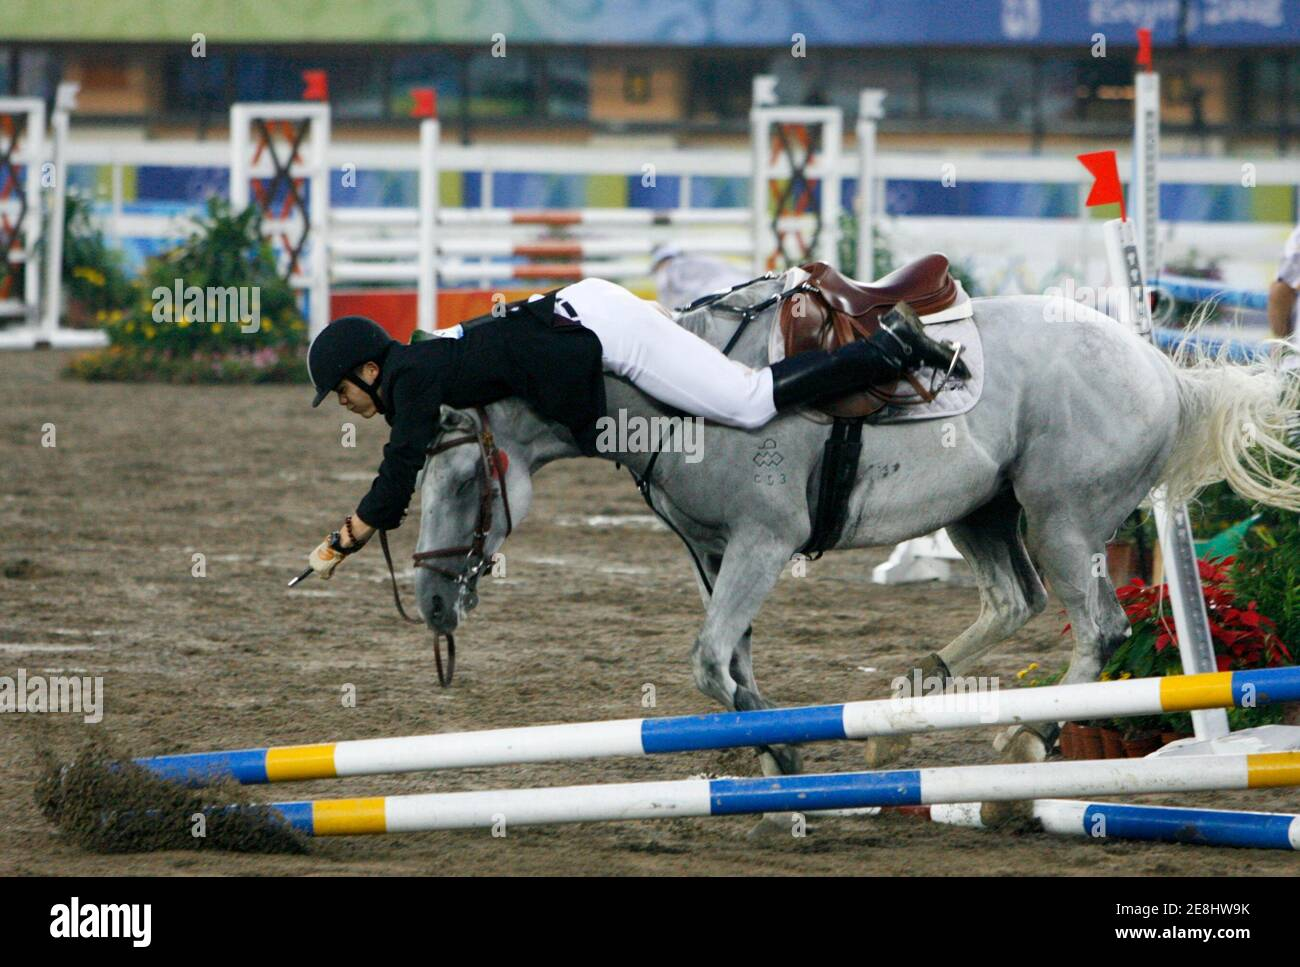 Cao Zhongrong of China falls from his horse ChuChu during the men's riding show jumping event of the modern pentathlon competition at the Beijing 2008 Olympic Games, August 21, 2008.     REUTERS/Claro Cortes IV (CHINA) Banque D'Images